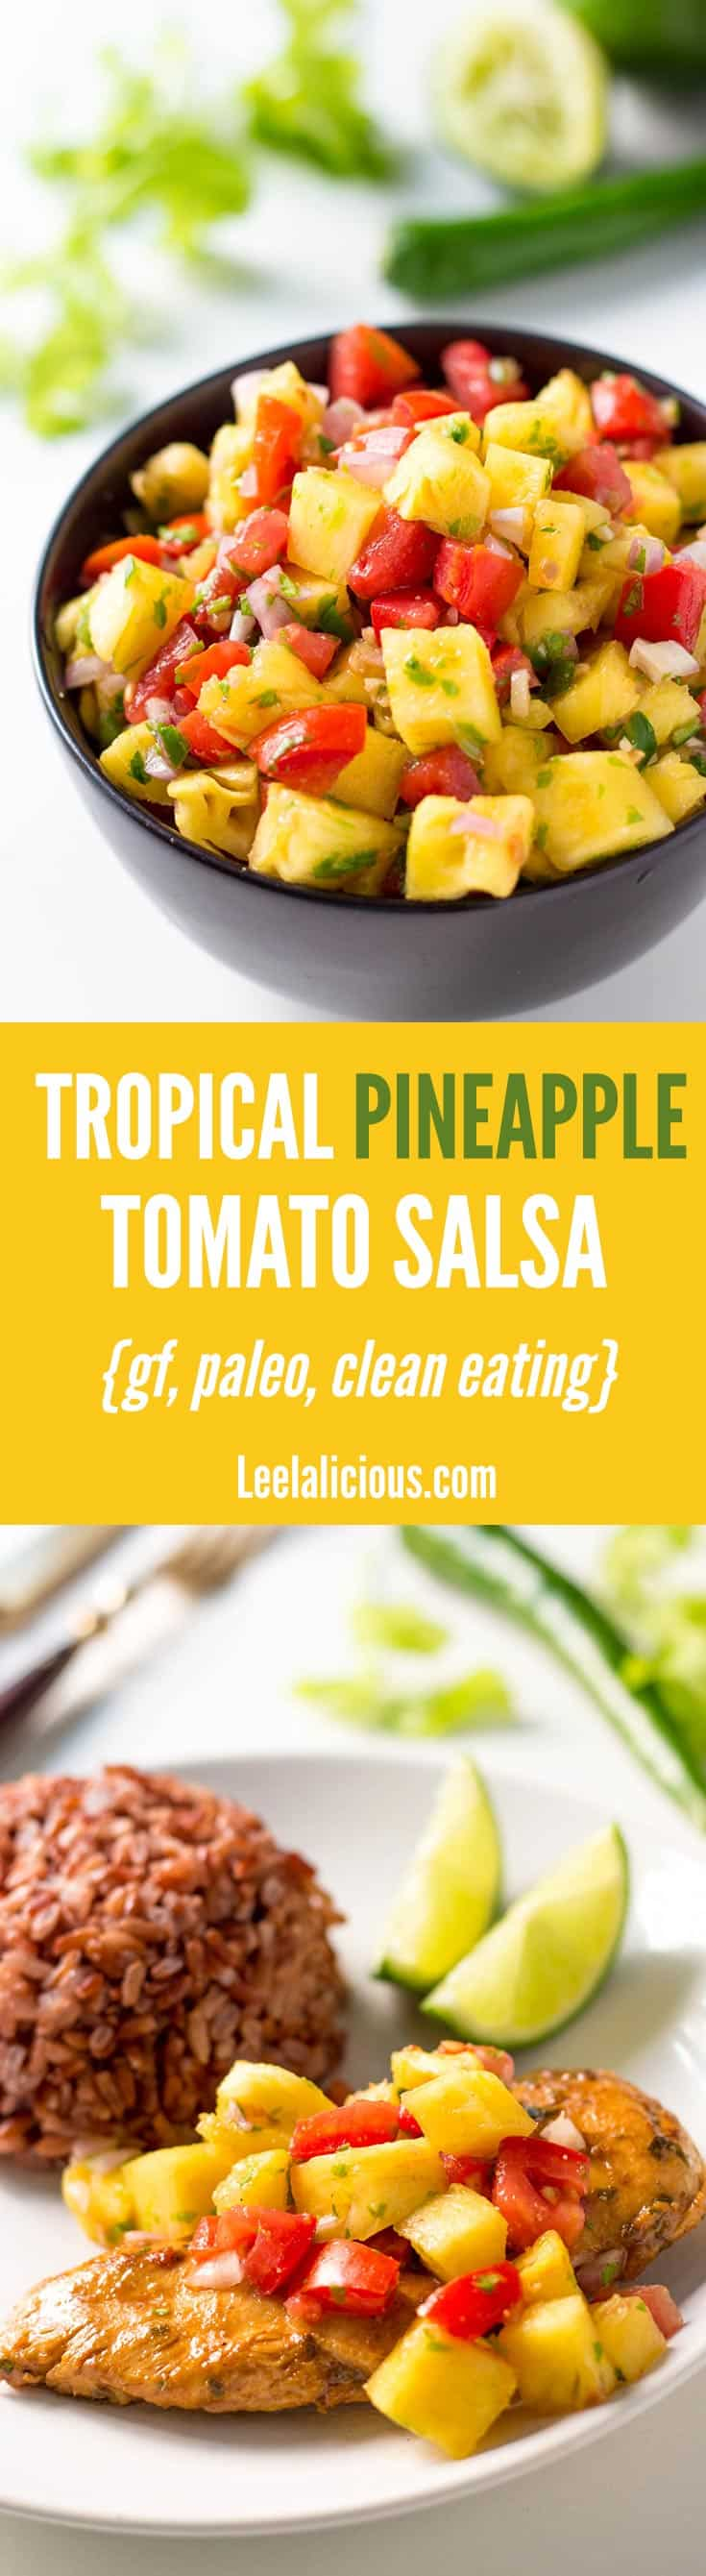 This Tropical Pineapple Tomato Salsa makes a flavorful appetizer with tortilla chips or a delicious topping for tacos or grilled chicken. This clean eating recipe is vegan, gluten free and paleo friendly.